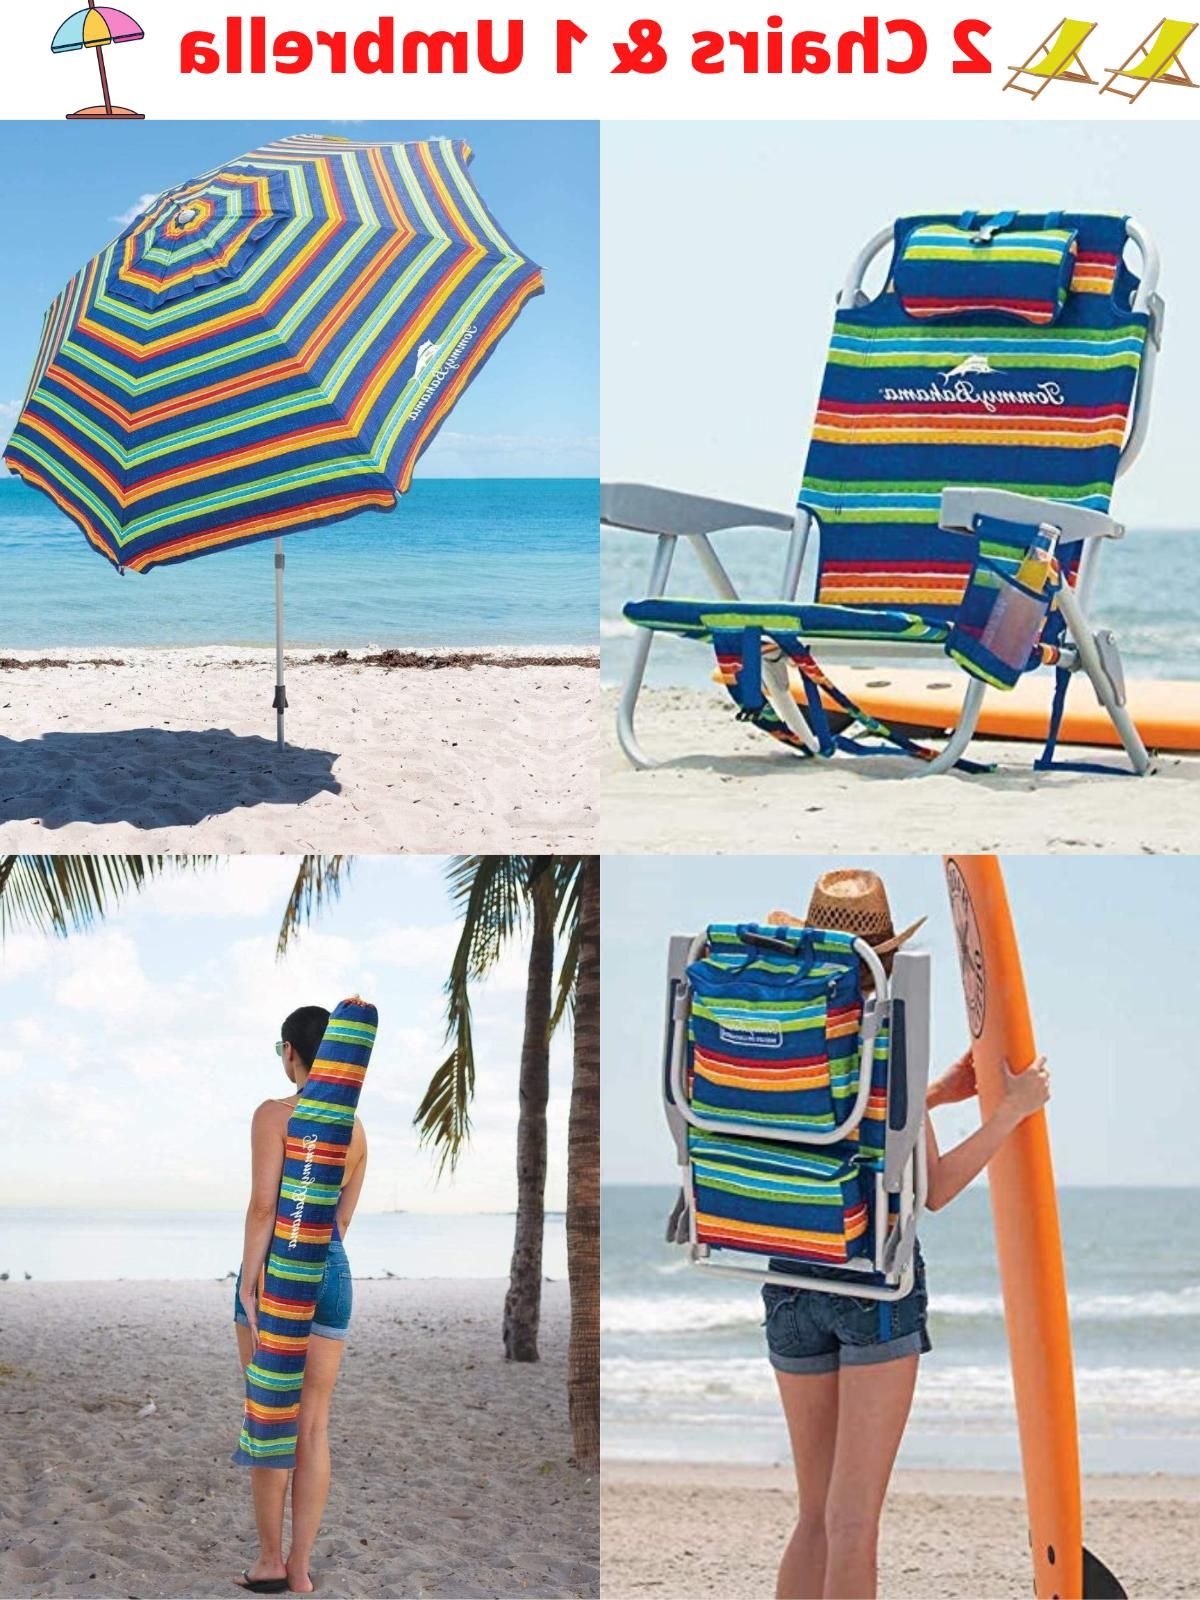 Tommy Bahama Beach Chair and Umbrella Beach Set 2020 Brand N